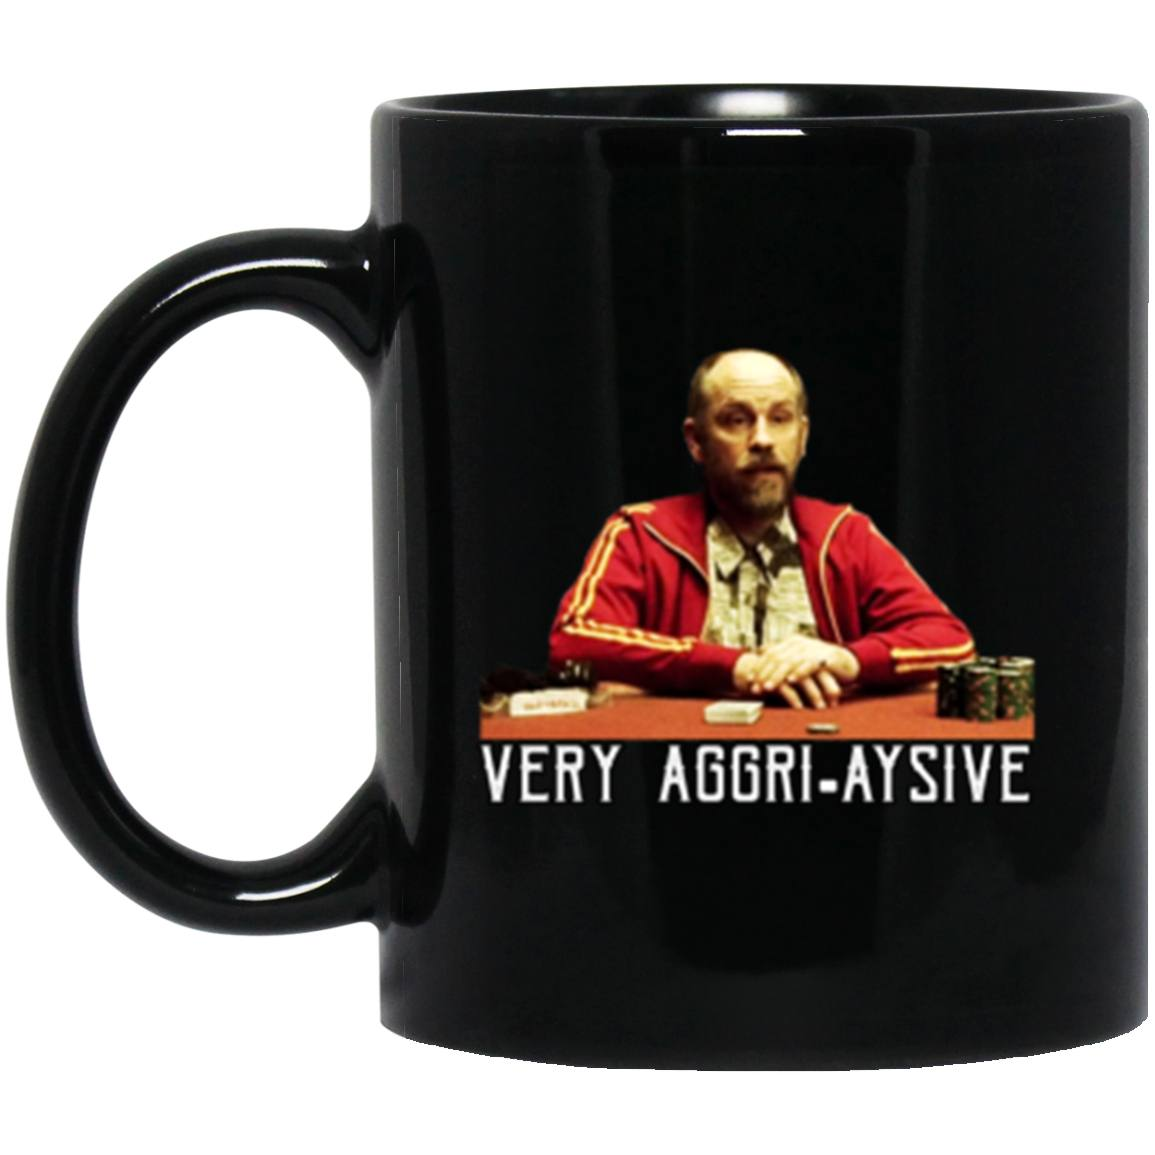 Drinkware - KGB Aggri-aysive Black Mug 11oz (2-sided)